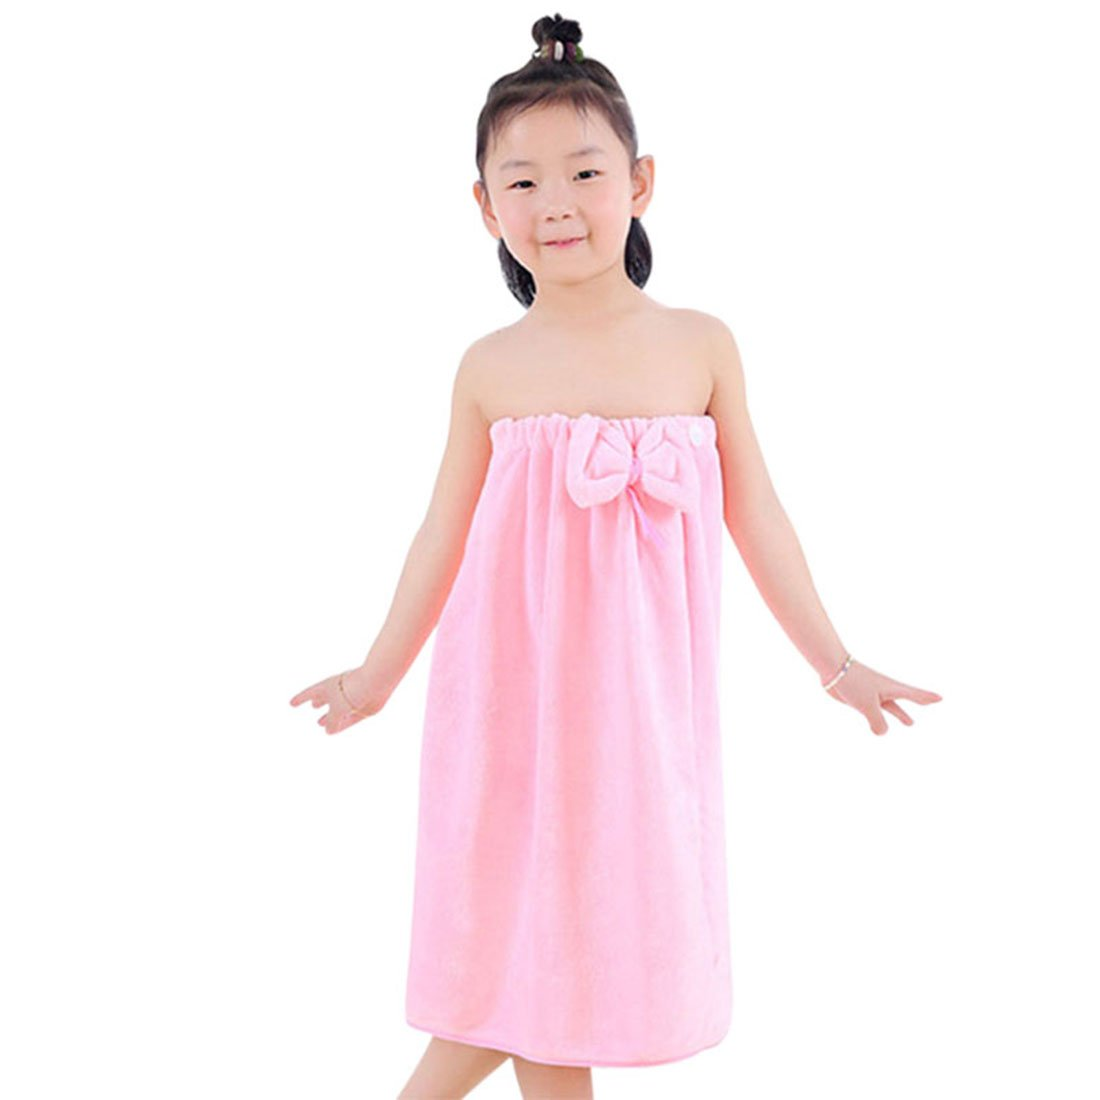 Freahap Kids Bathrobe Girls Bath Towel Wrap Shower Skirt Tube Dressing